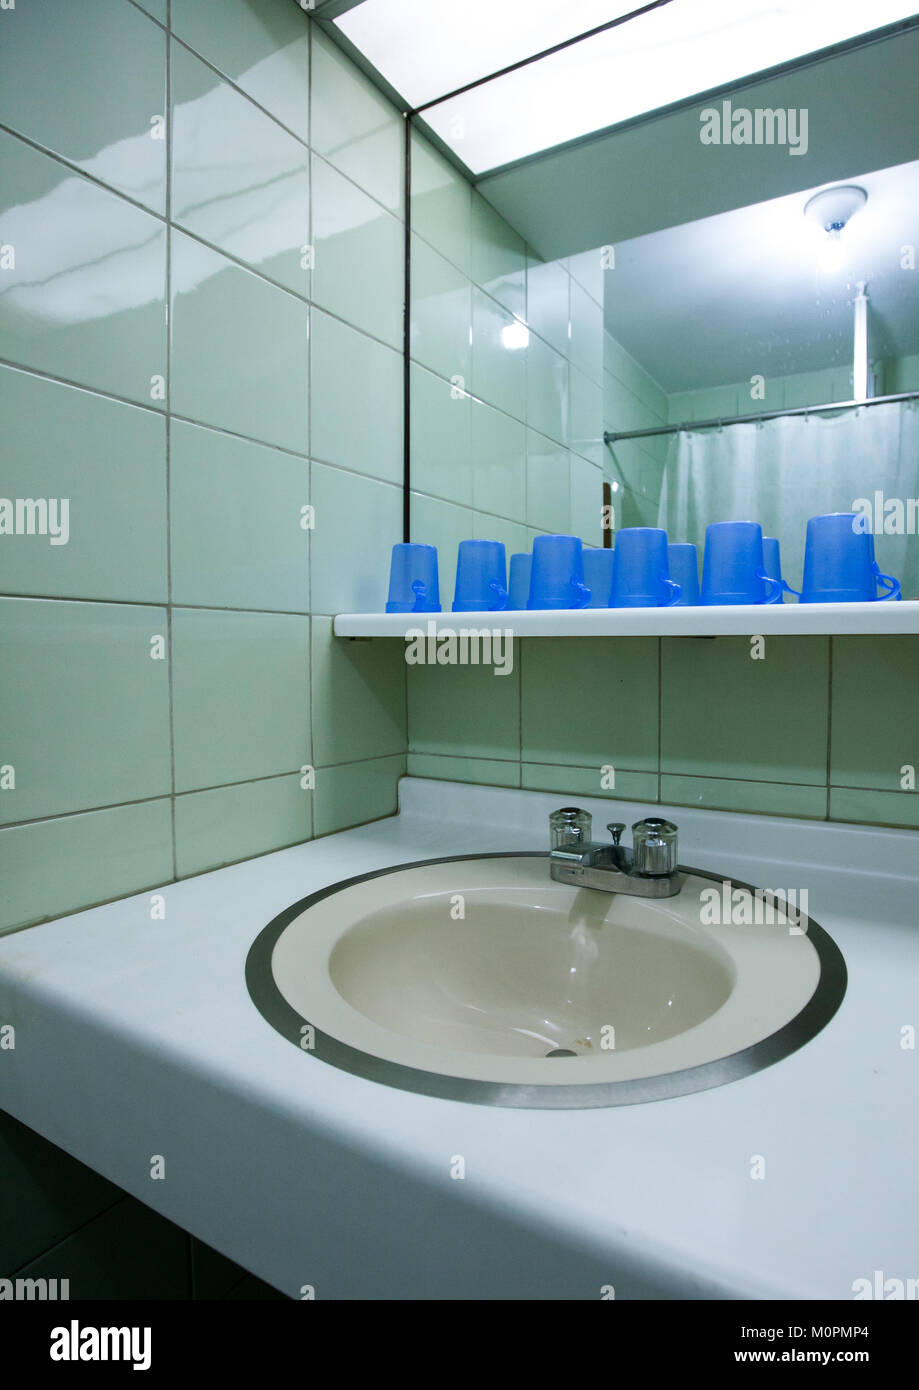 Bathroom for the pioneers in Songdowon international children's camp, Kangwon Province, Wonsan, North Korea Stock Photo